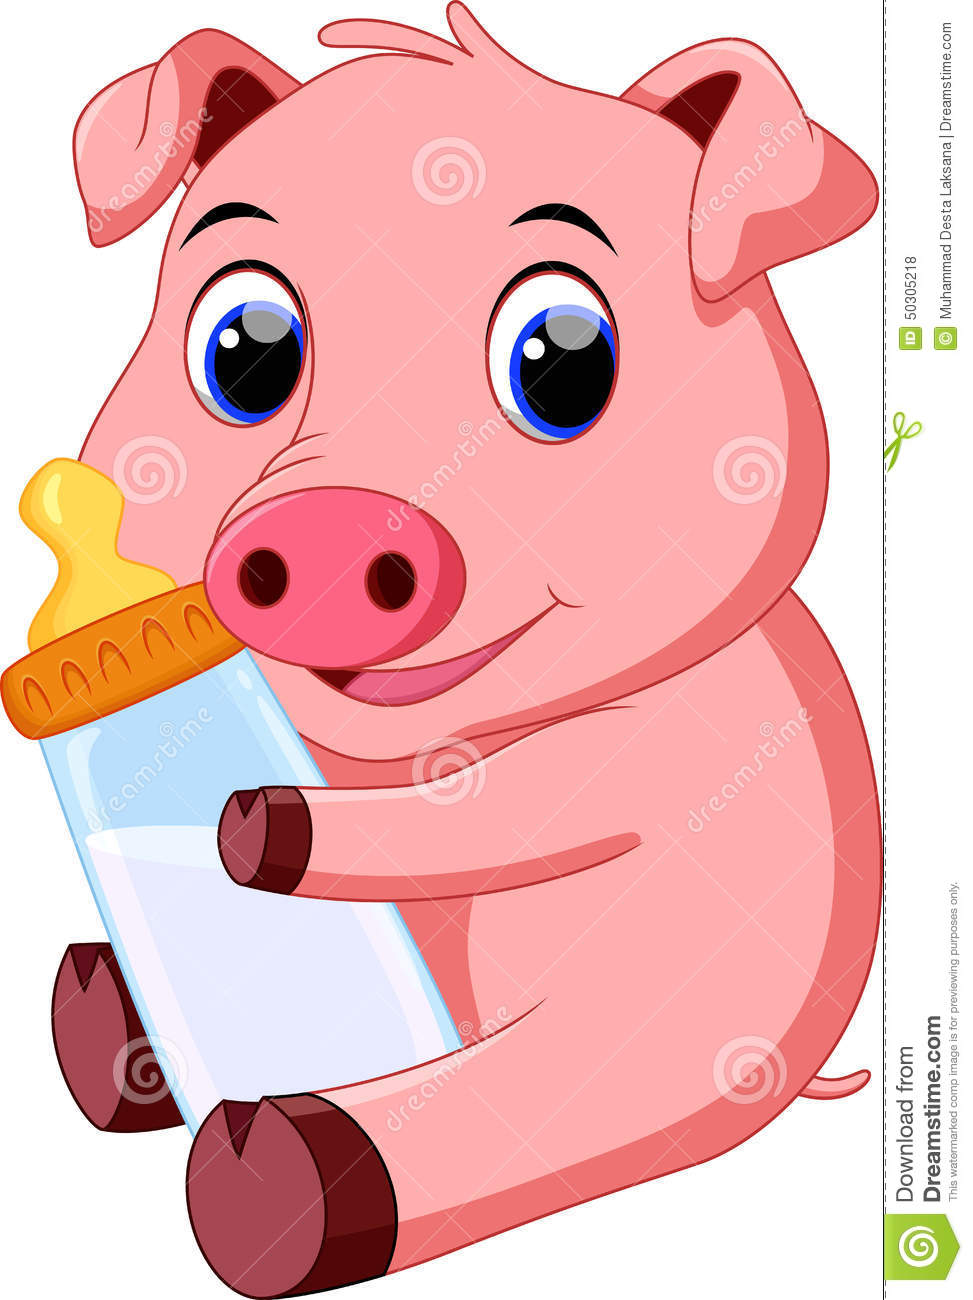 973x1300 Cute Pig Pictures Cartoon Collection